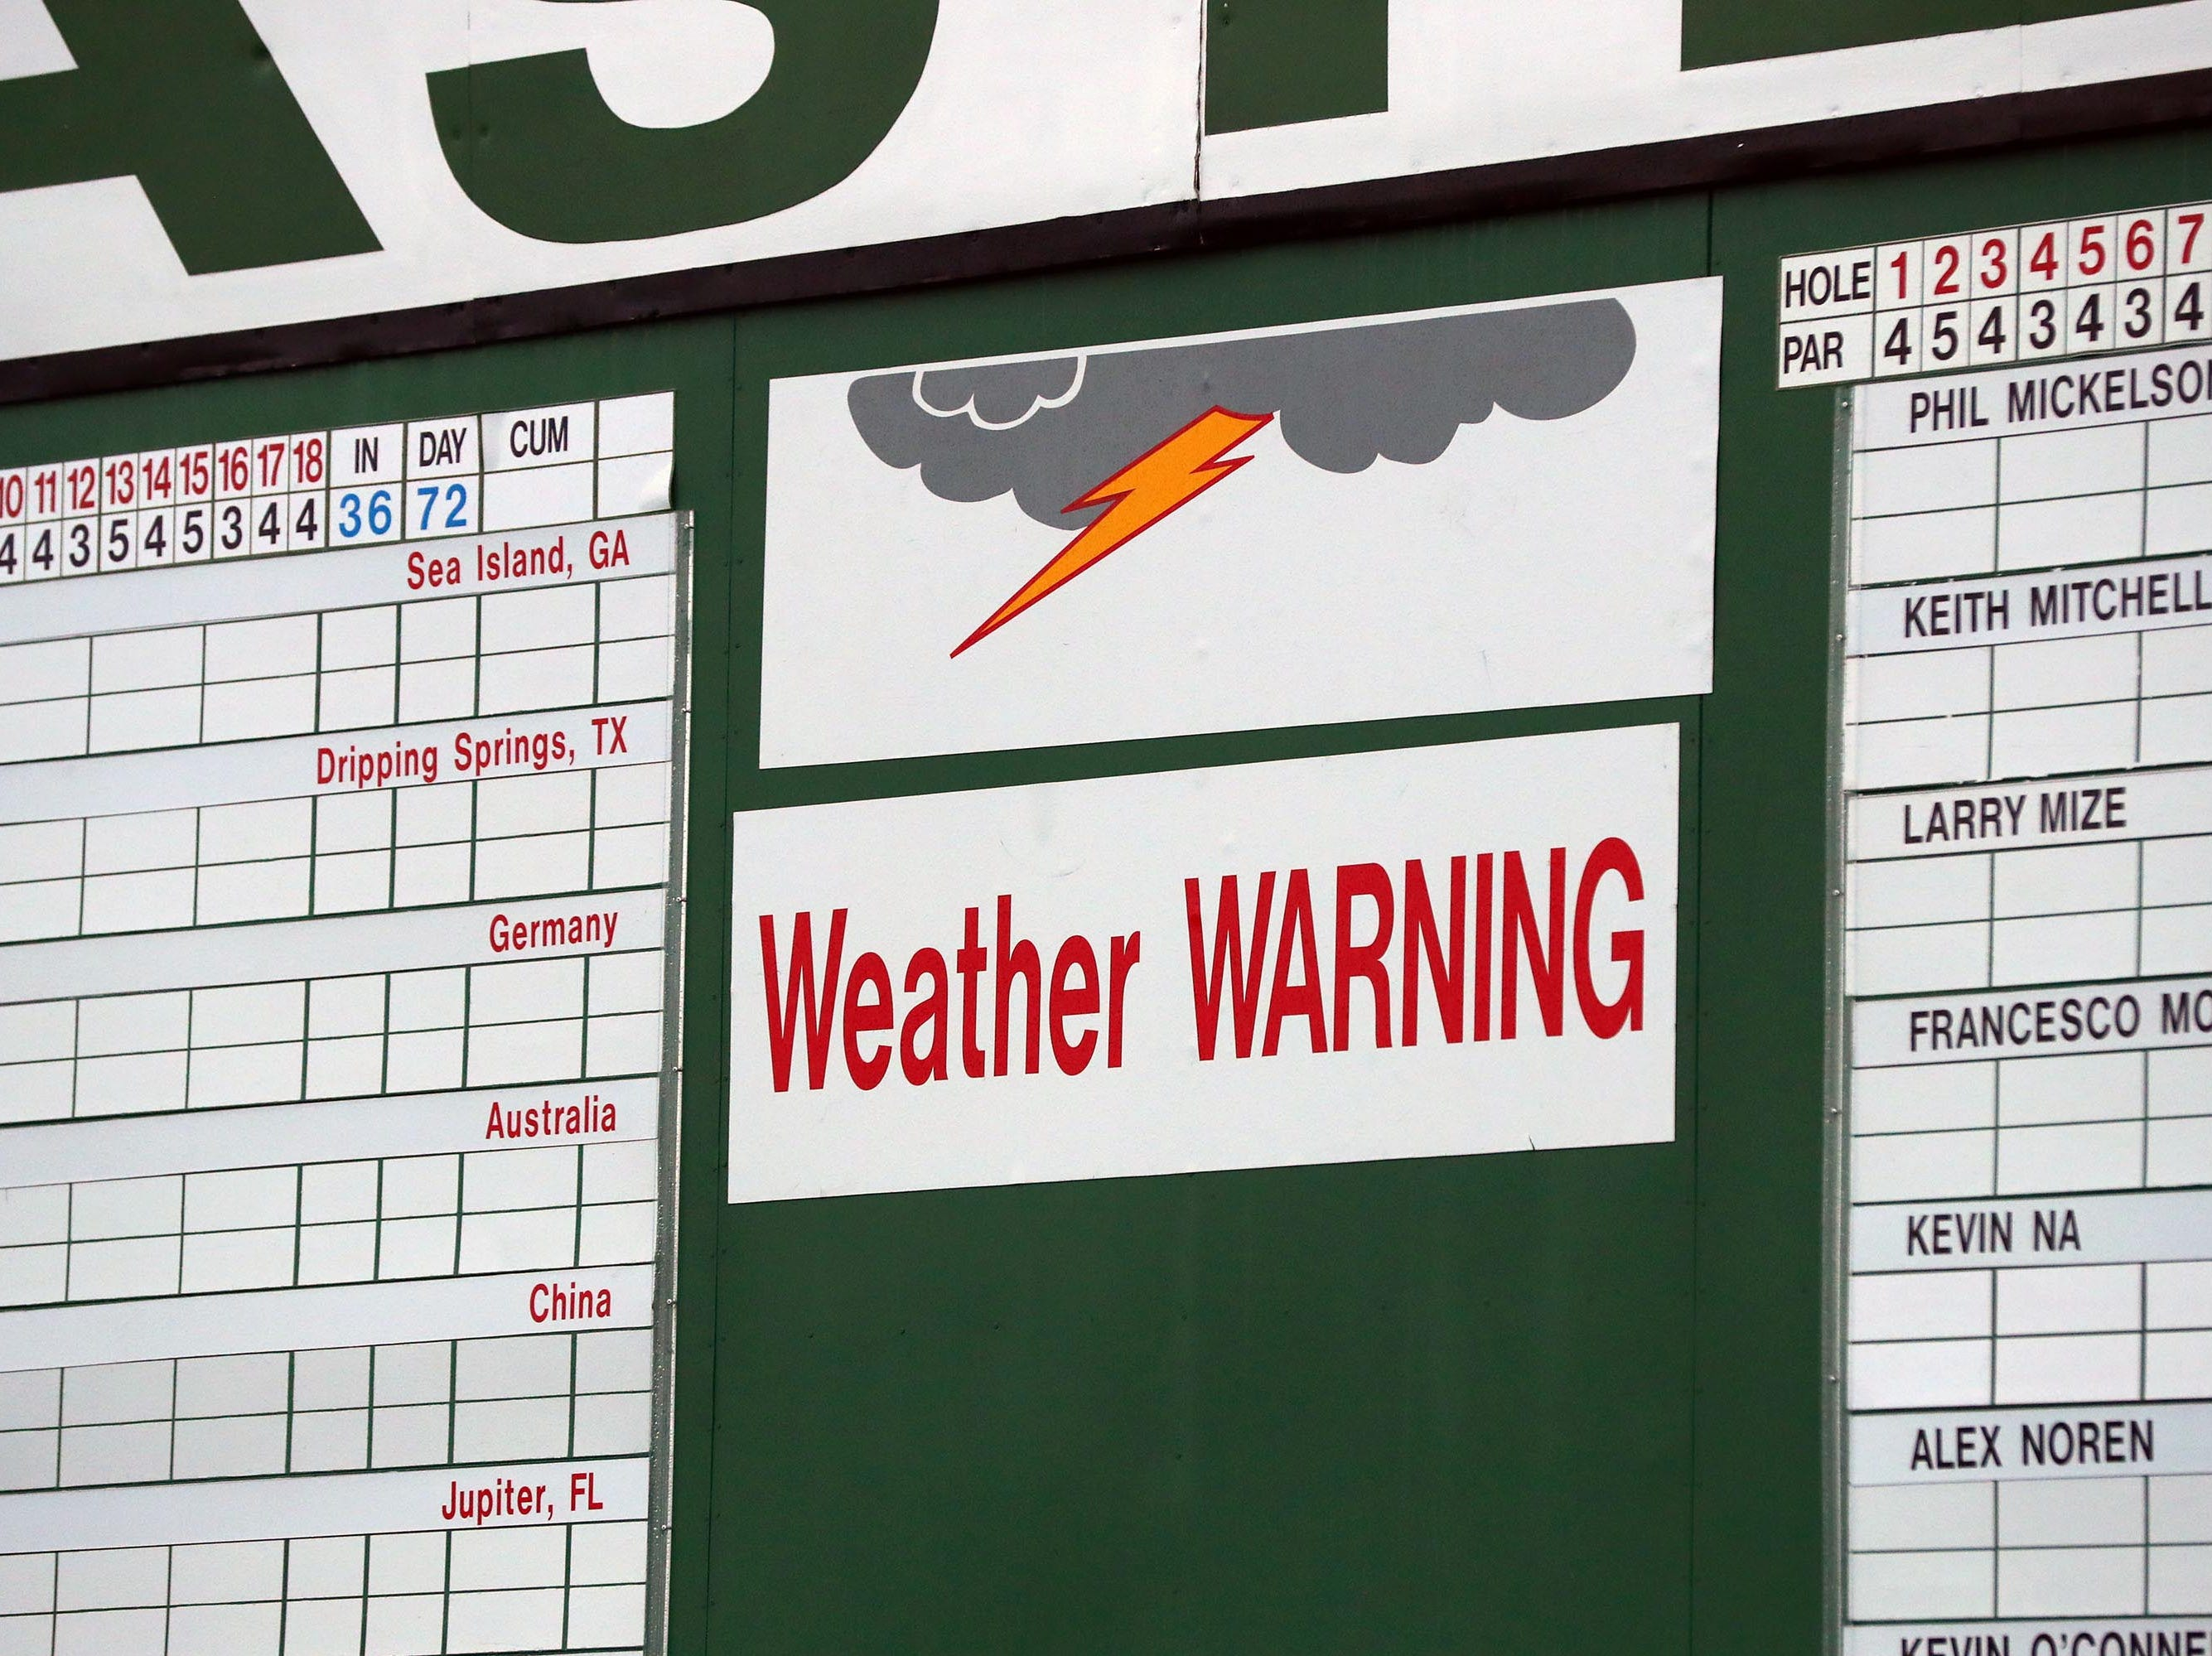 Apr 9, 2019; Augusta, GA, USA; Scoreboard at the first hole under a weather warning with rain and the threat of thunderstorms during a practice round for The Masters golf tournament at Augusta National Golf Club. Mandatory Credit: Rob Schumacher-USA TODAY Sports